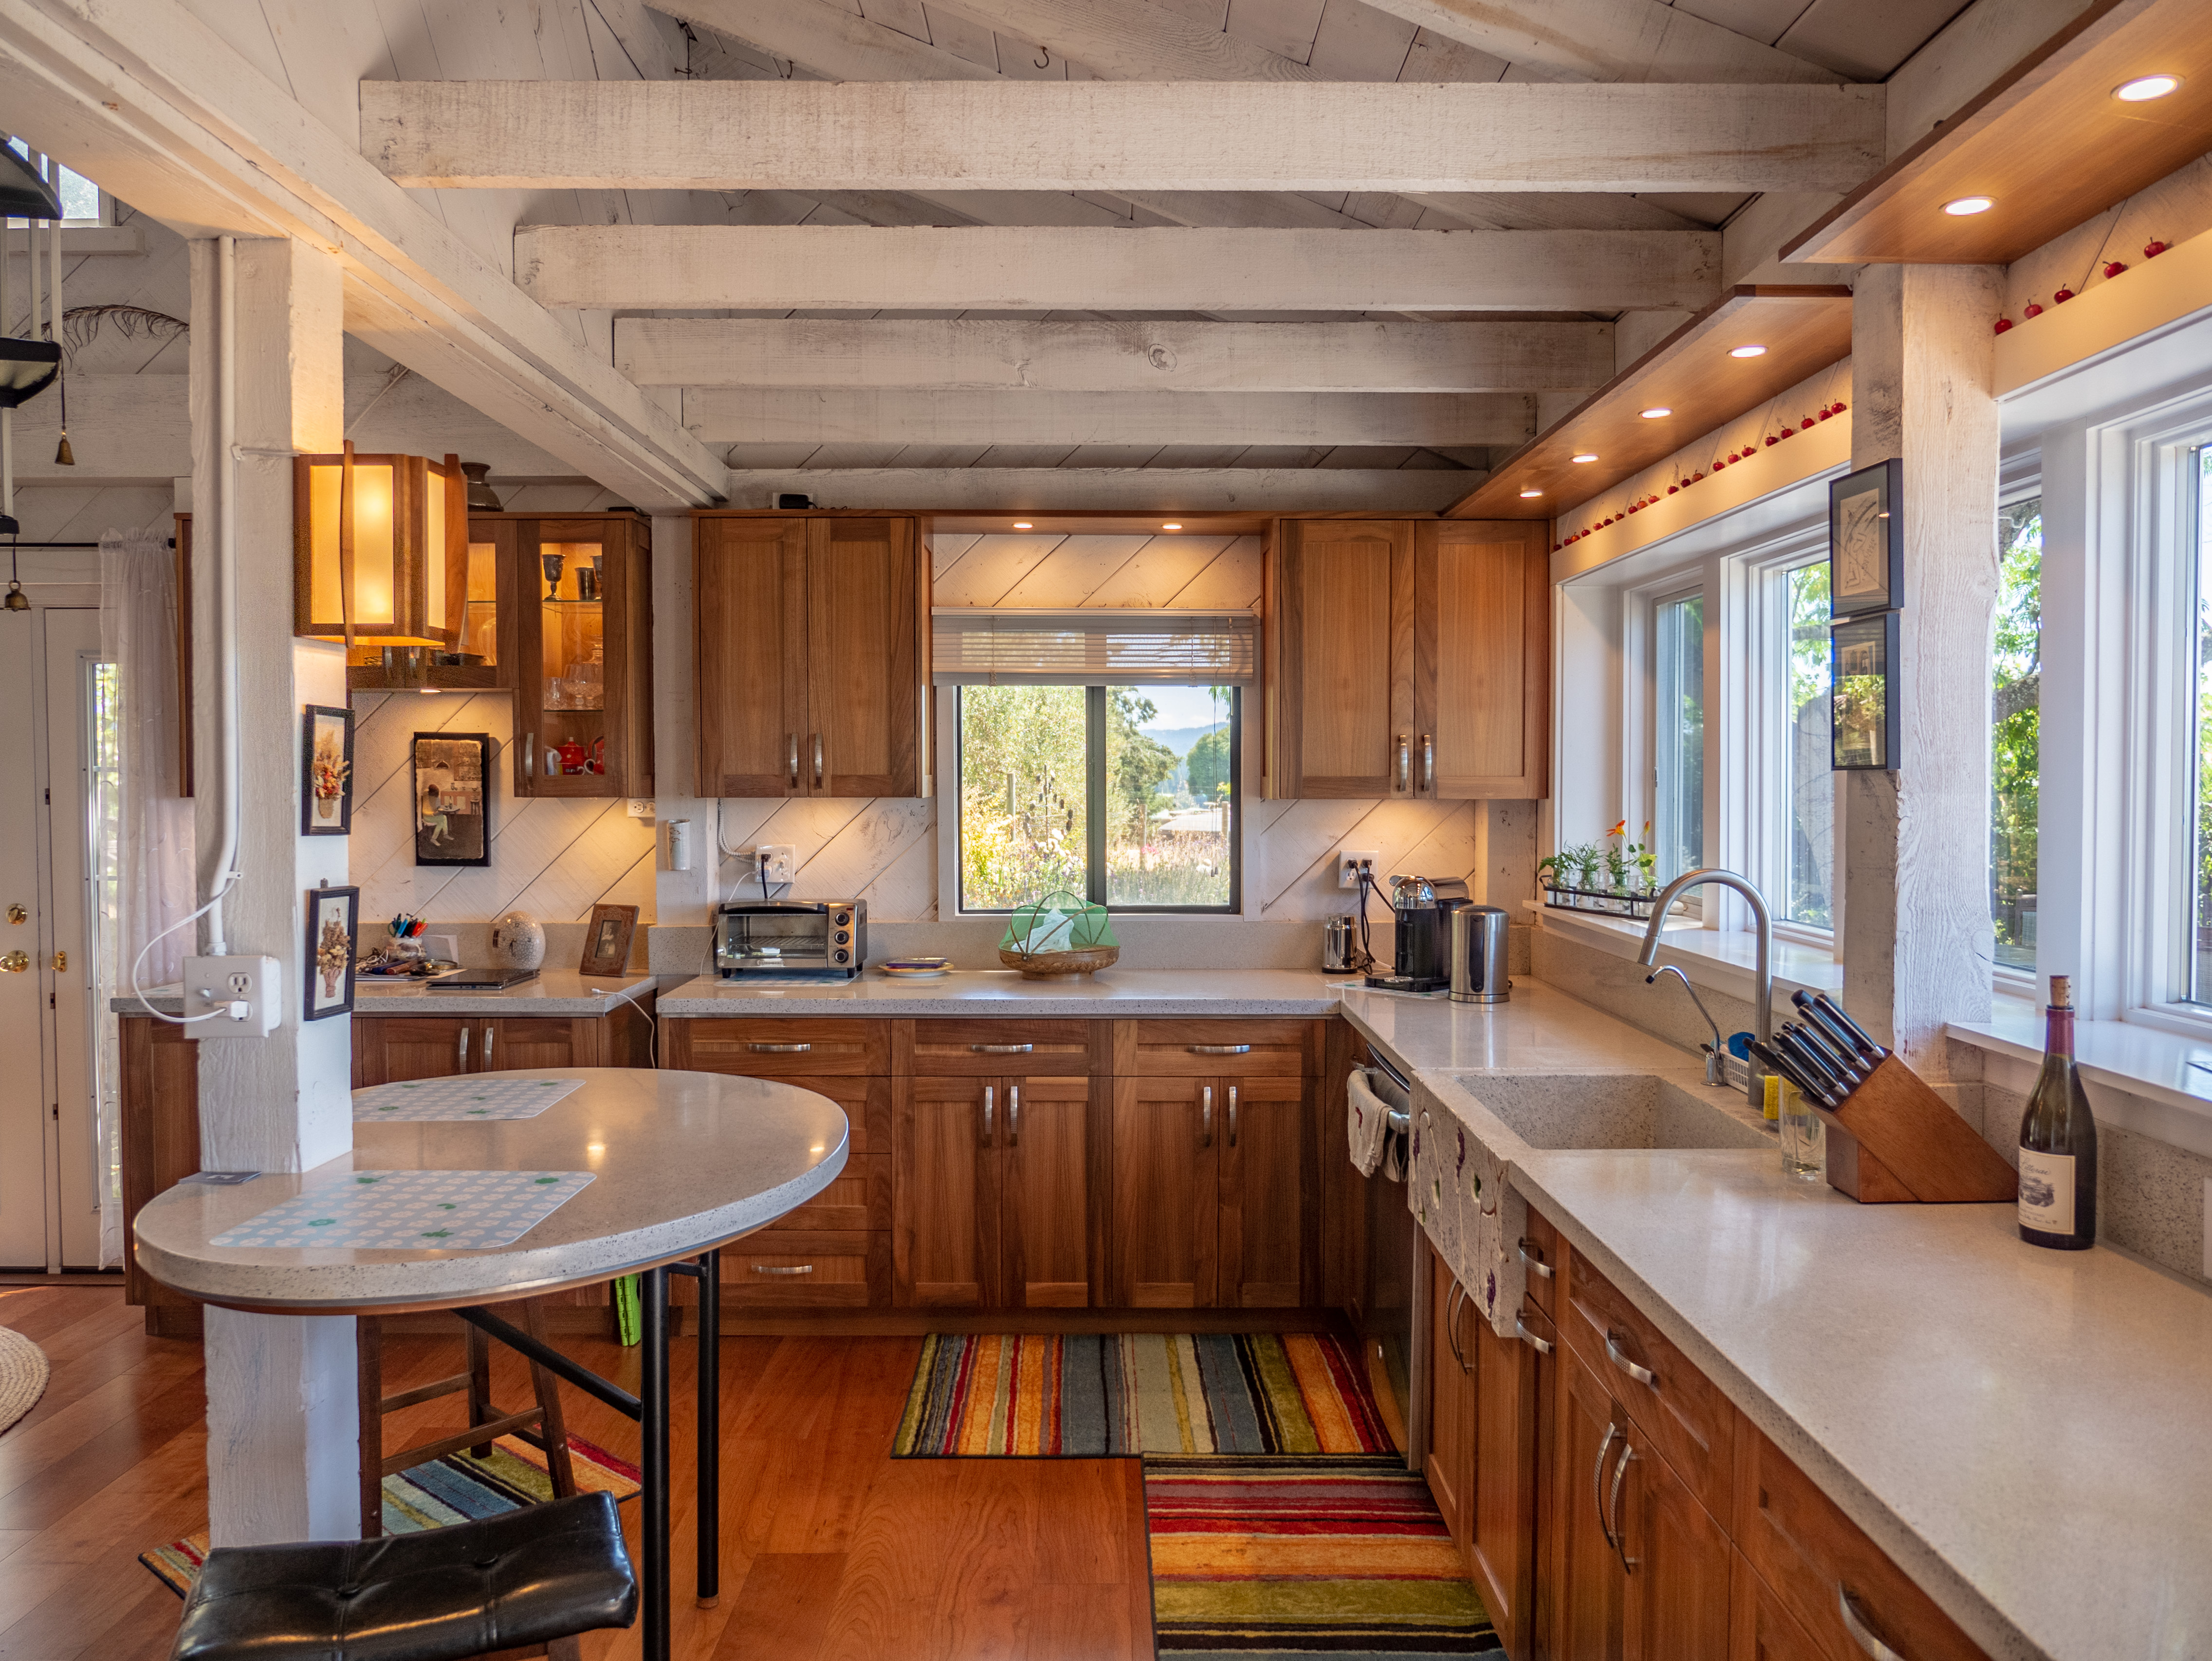 Dream Kitchen - custom cabinets, concrete counter tops, large farm sink, windows featuring that valley view and a lovely flower garden